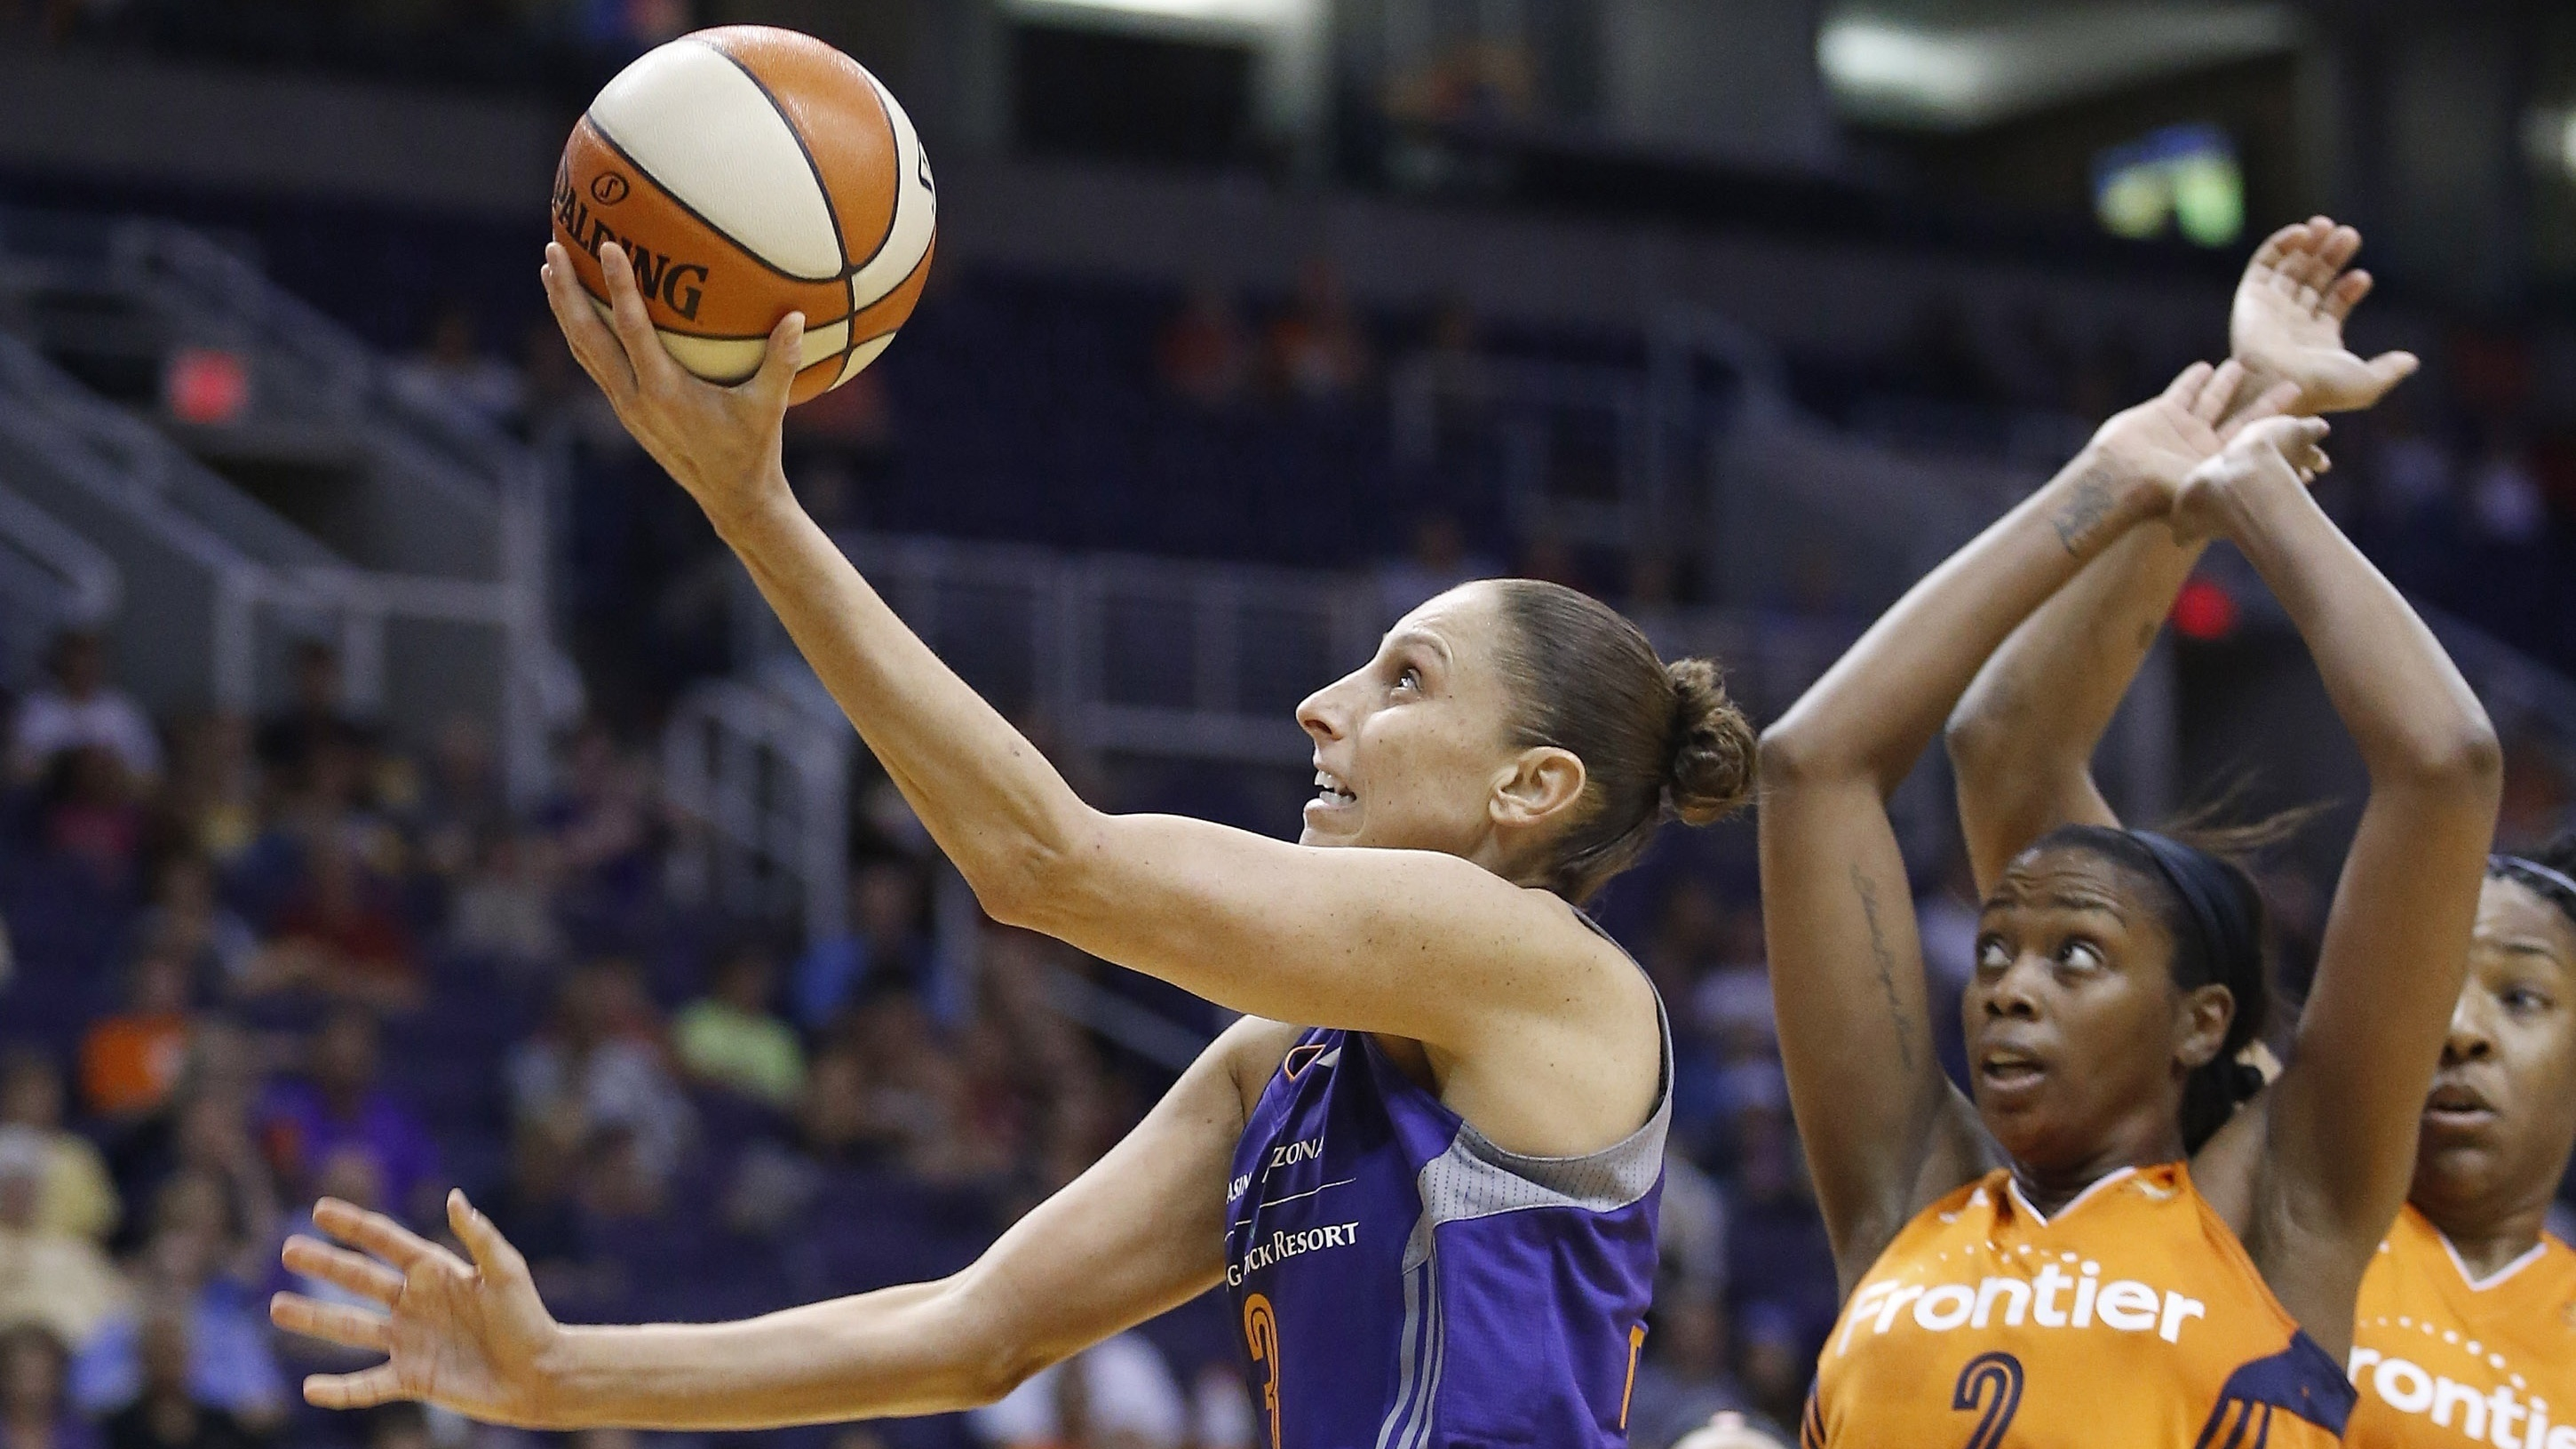 The Phoenix Mercury